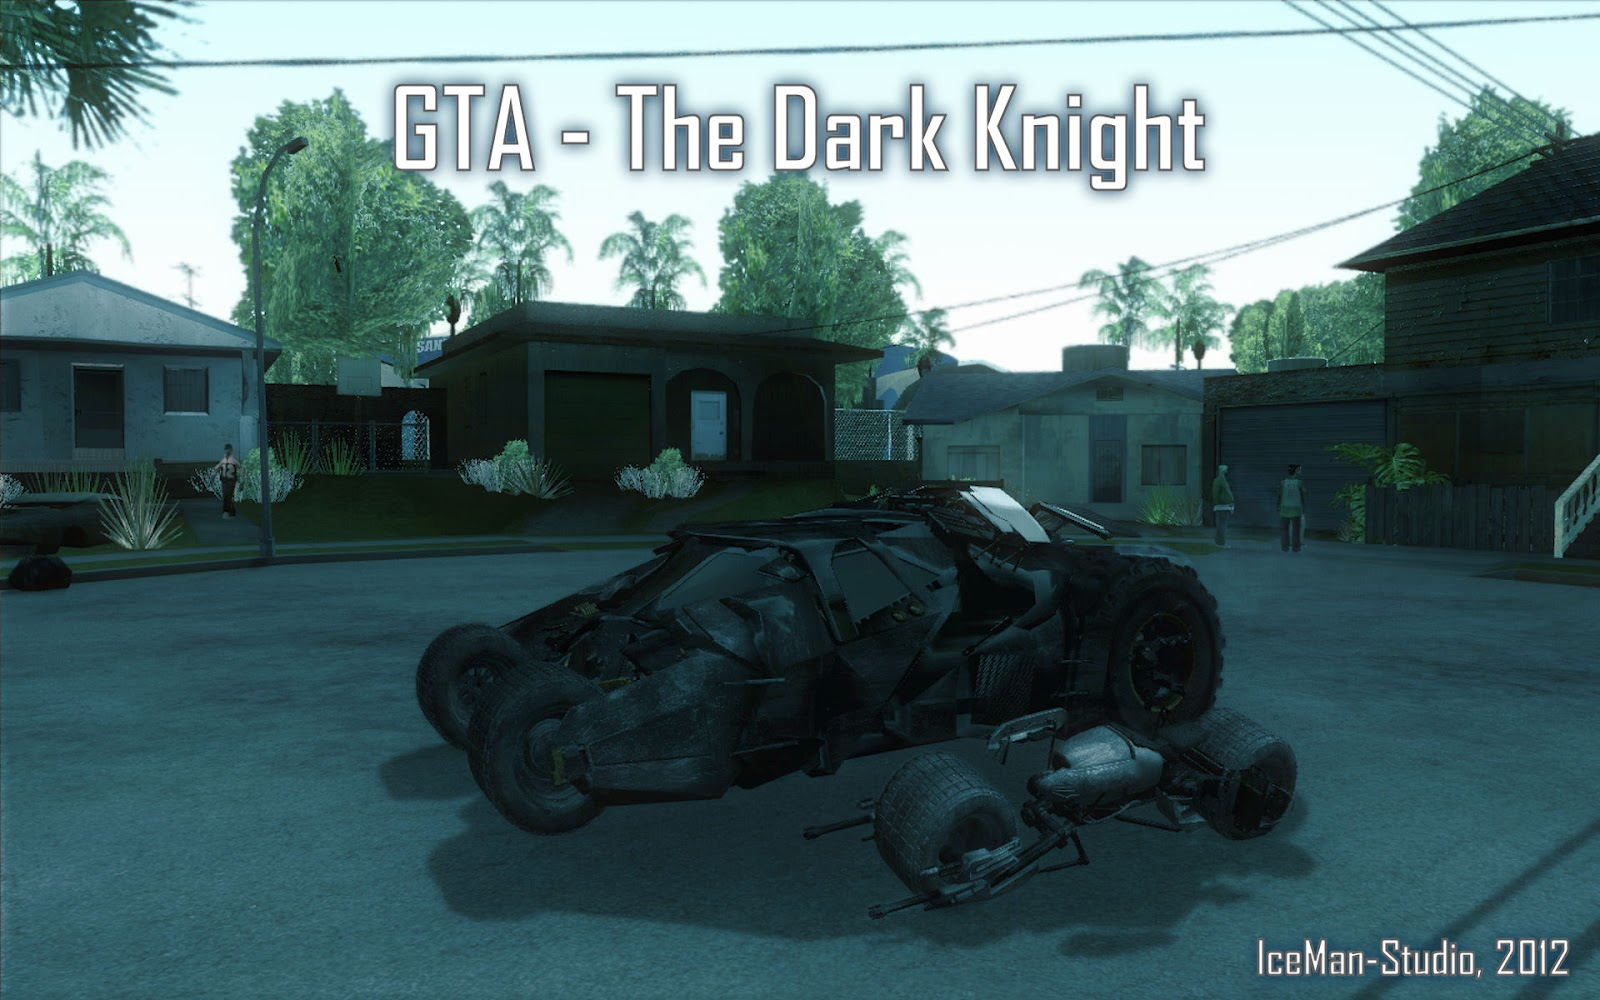 fcae9242fa3 IceMan-Studio: GTA - The Dark Knight